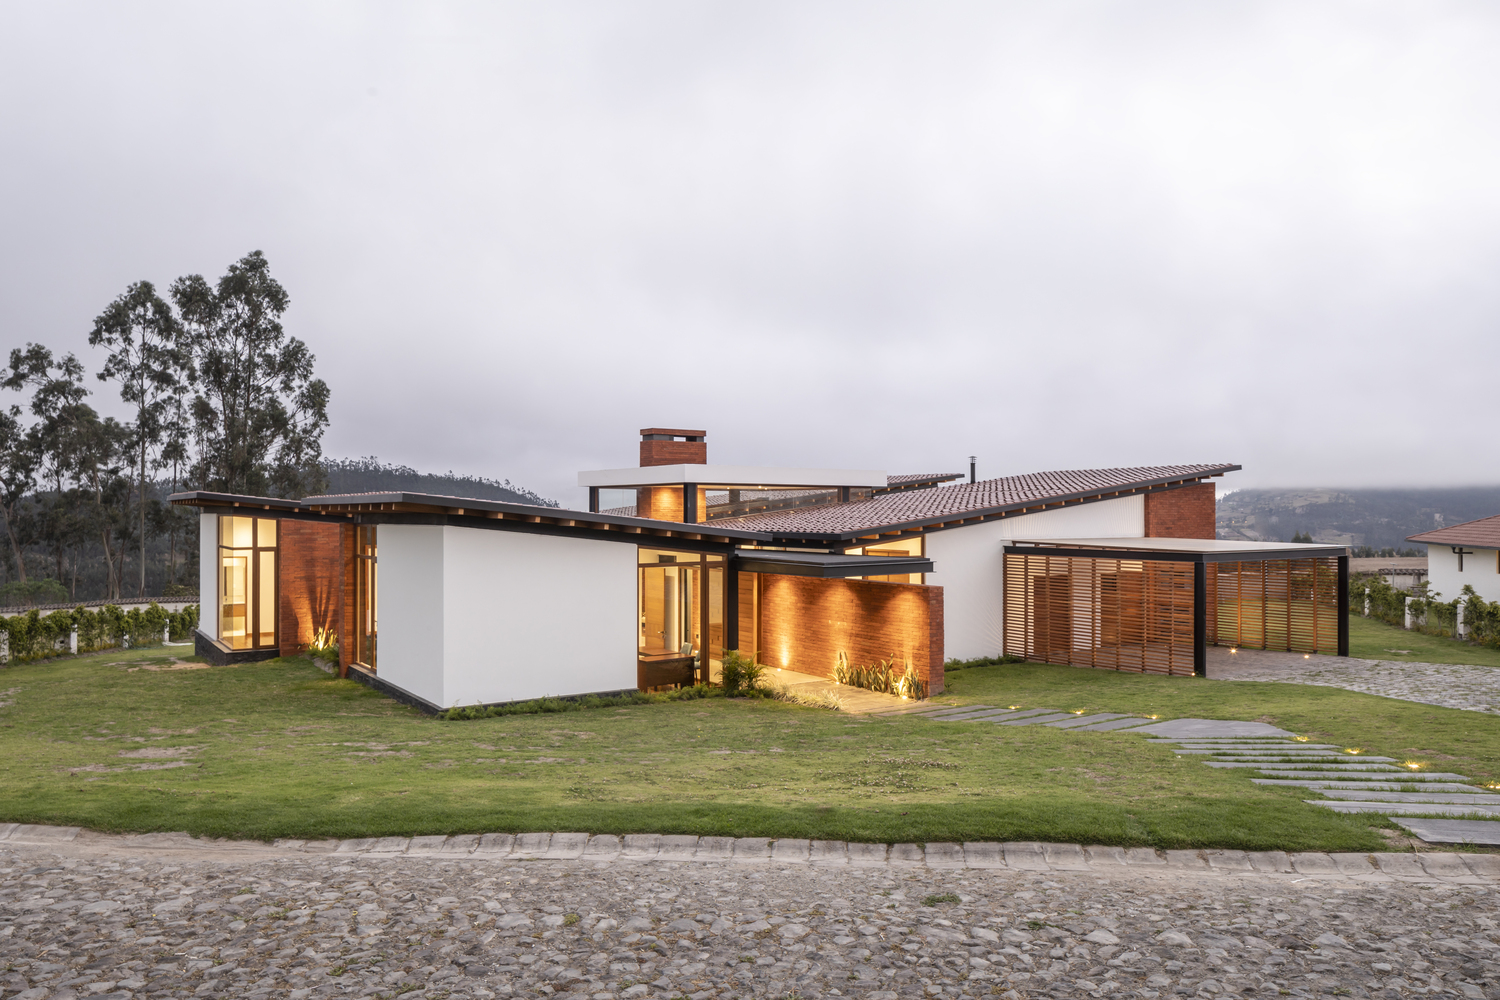 AO House protects its residents from the harsh weather conditions of the Andes mountains.